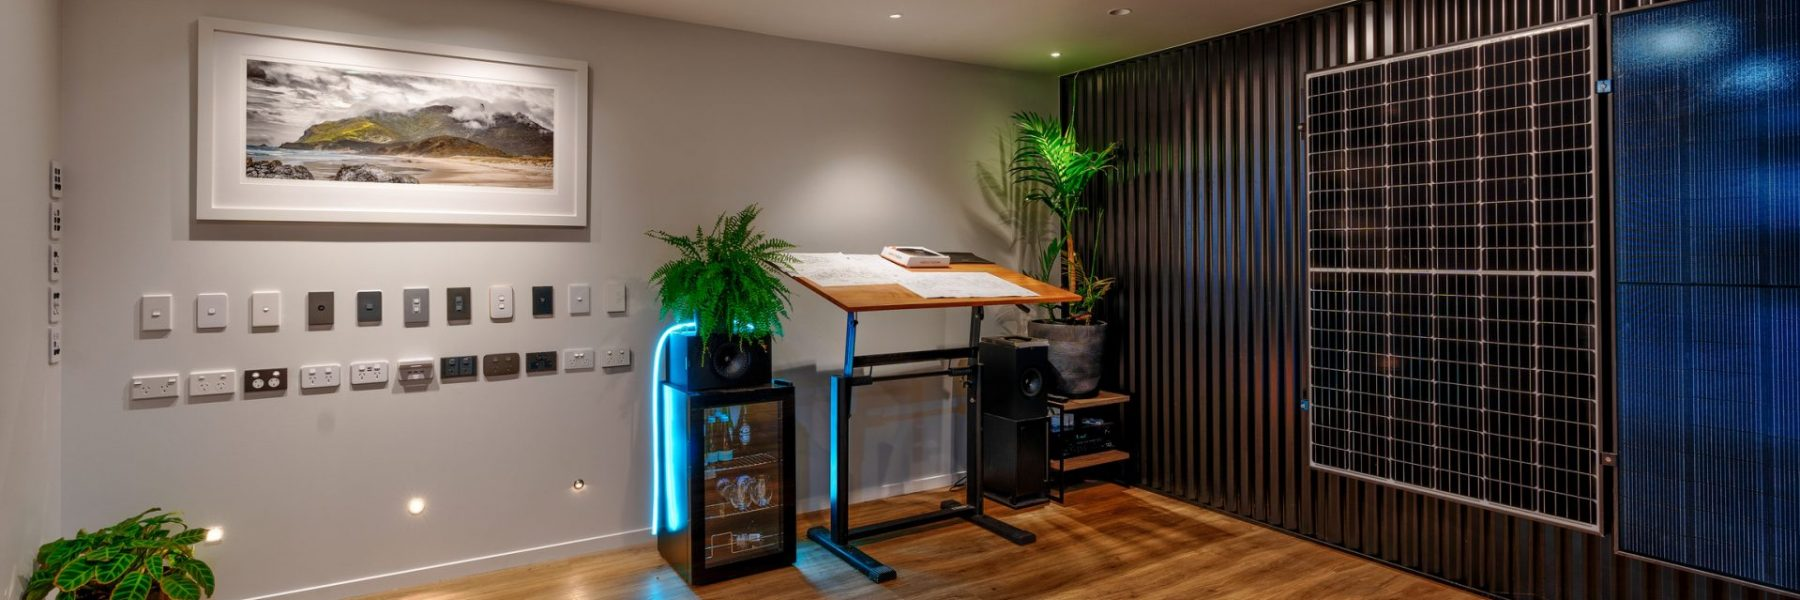 Interior view of Integrated Electrical and Solar's Whangarei showroom